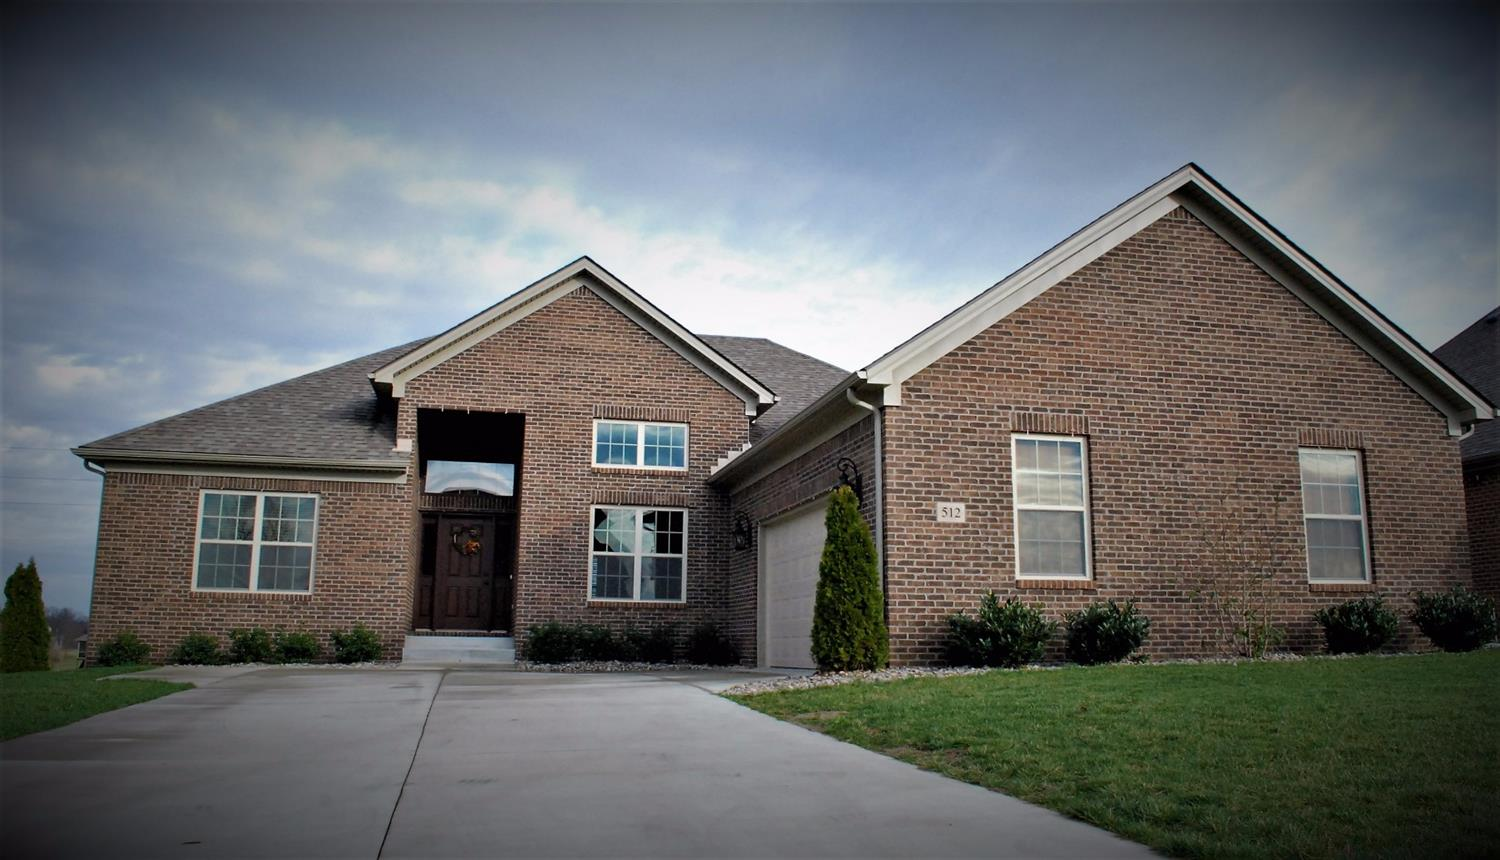 Home For Sale at 409 Doubletree Ct, Richmond, KY 40475